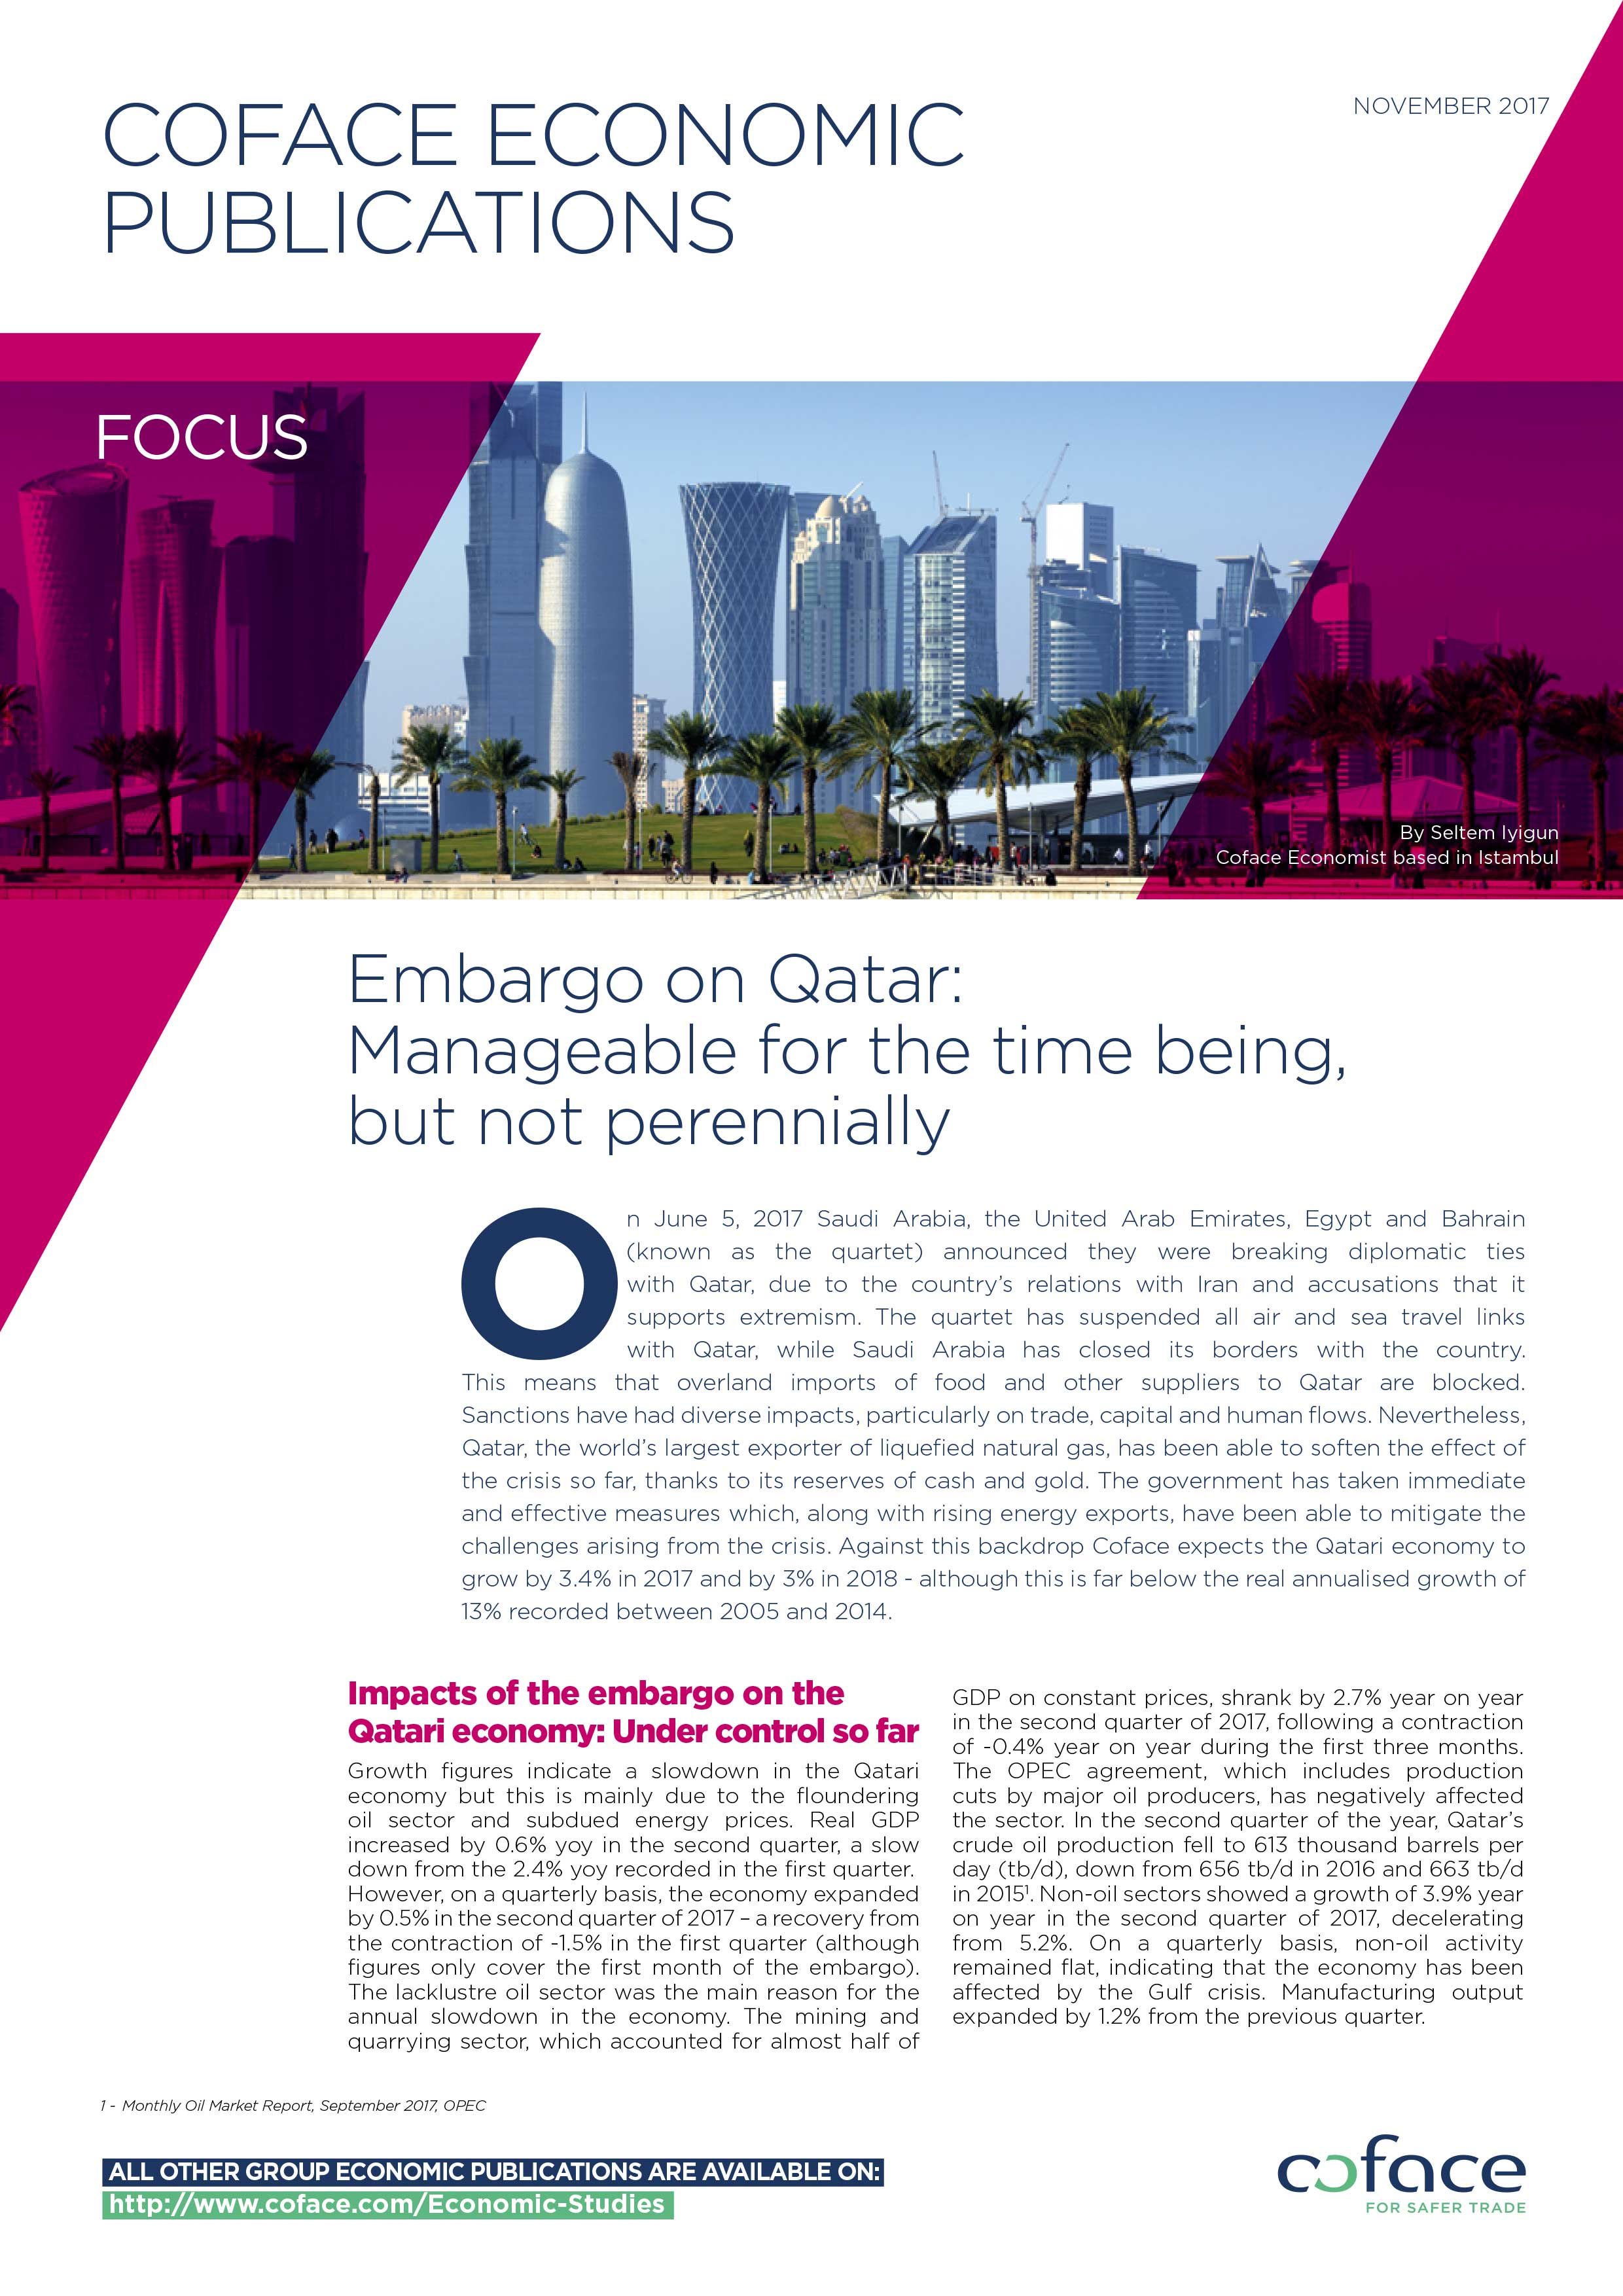 Embargo on Qatar: Manageable for the time being, but not perennially